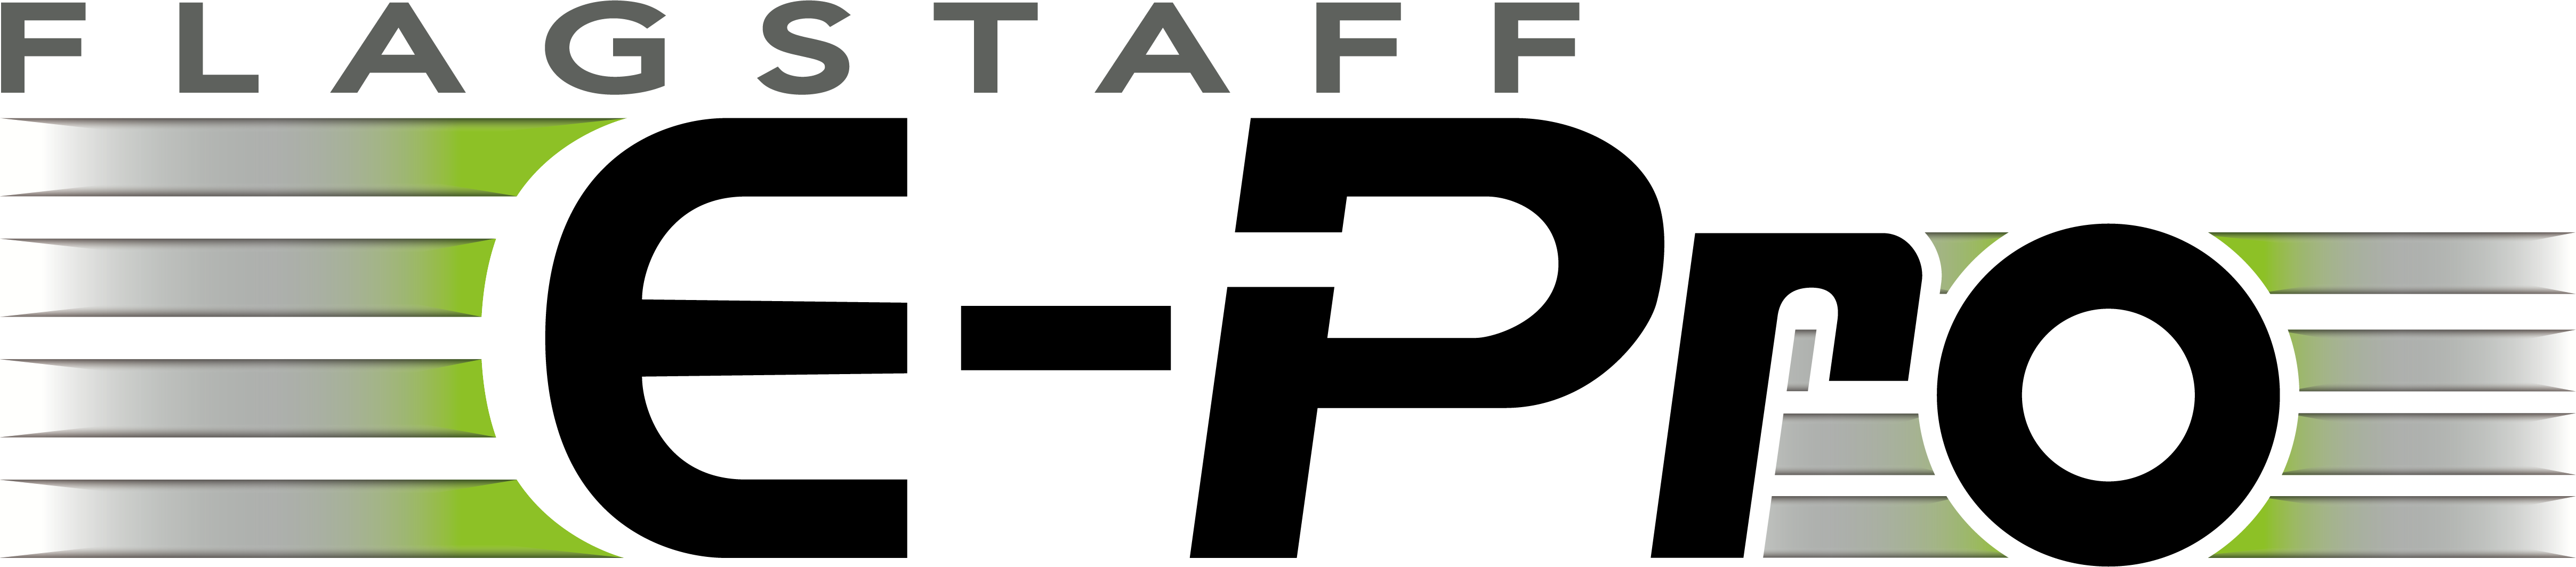 Flagstaff EPro Travel Trailer Logo